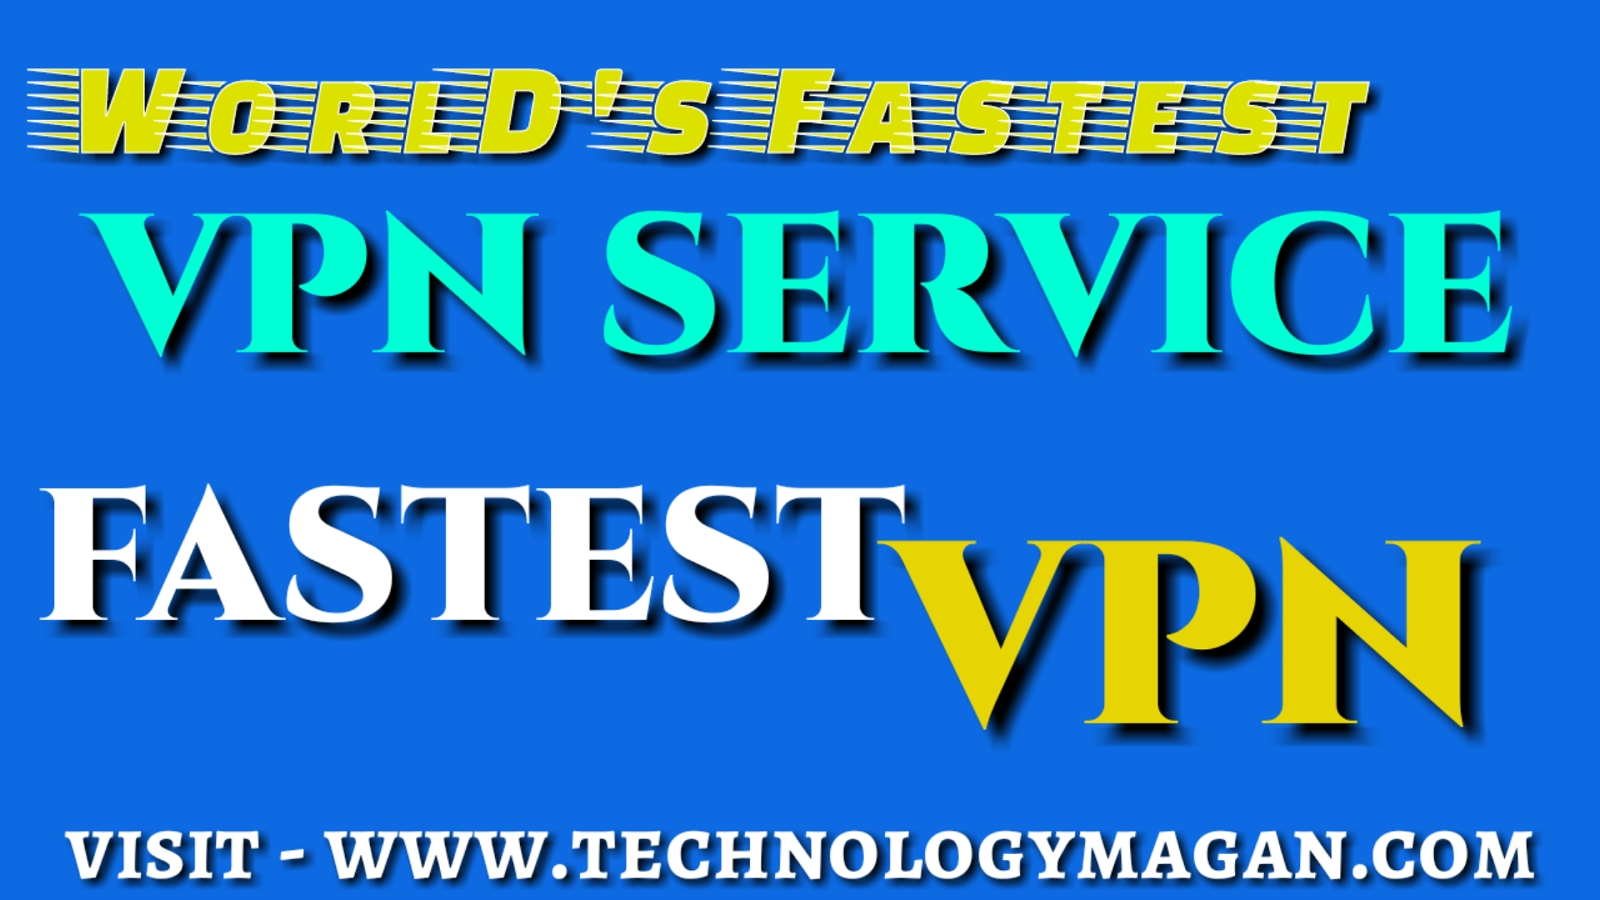 The fastest VPN for outright speed 2019